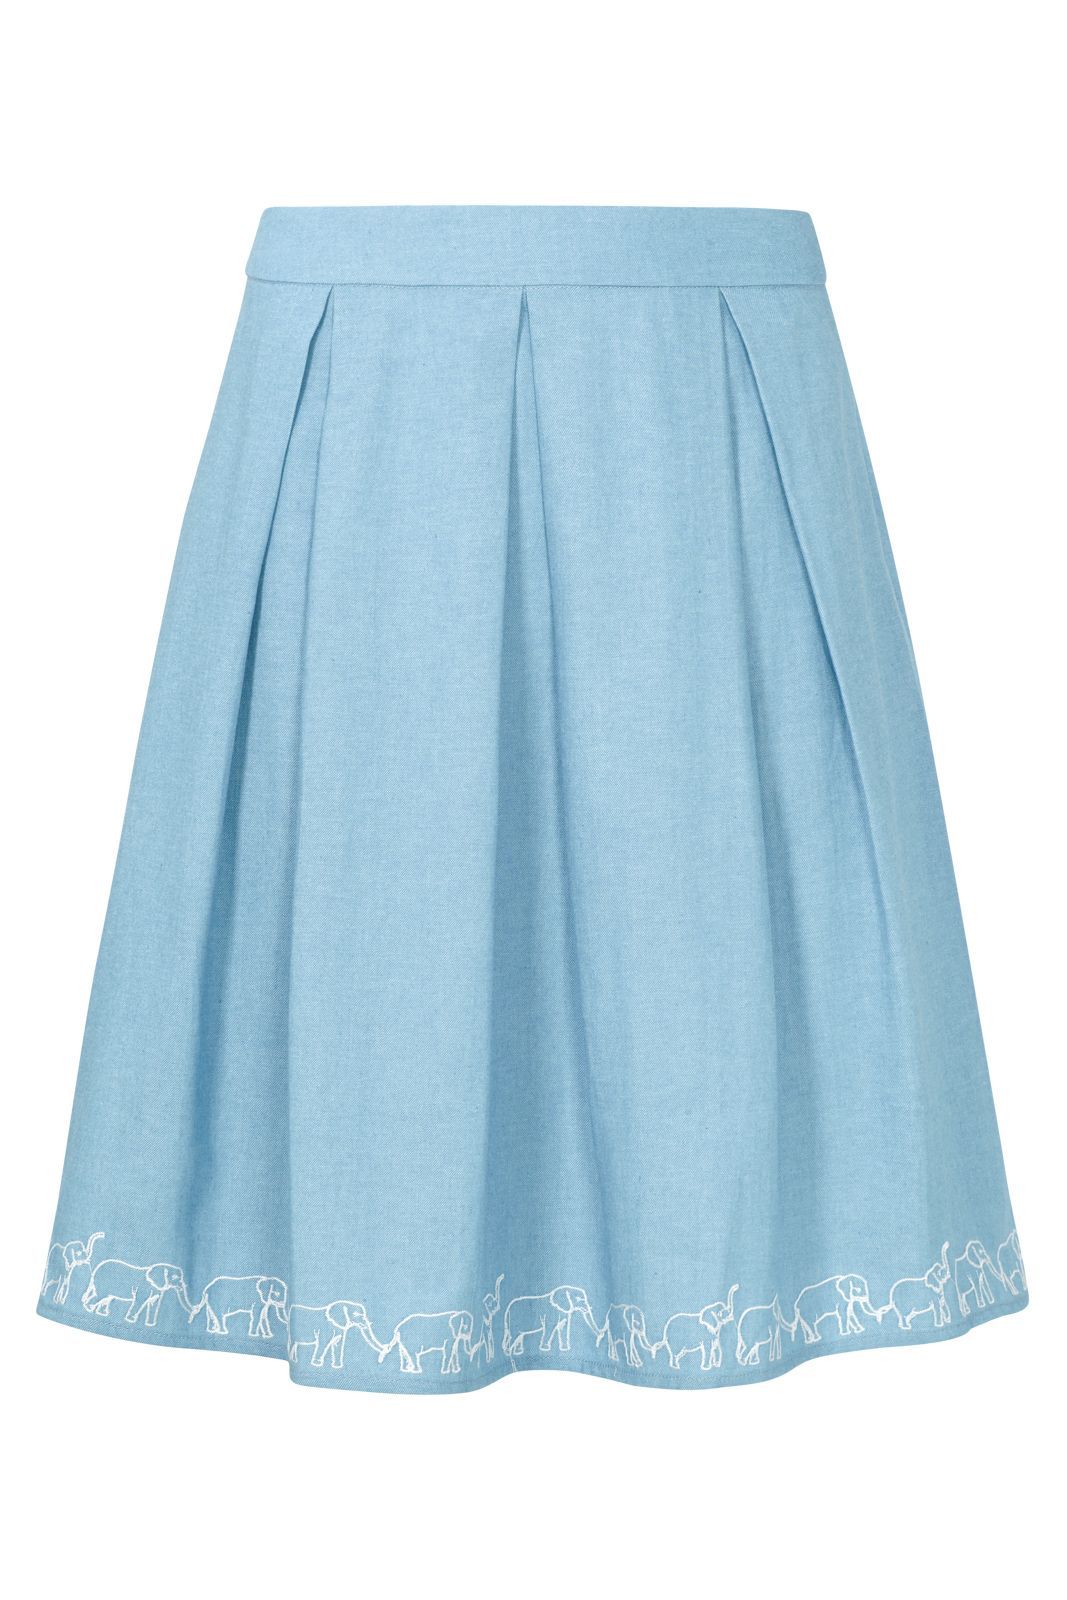 Sugarhill Boutique Fiona Ellie Embro Skirt, Blue